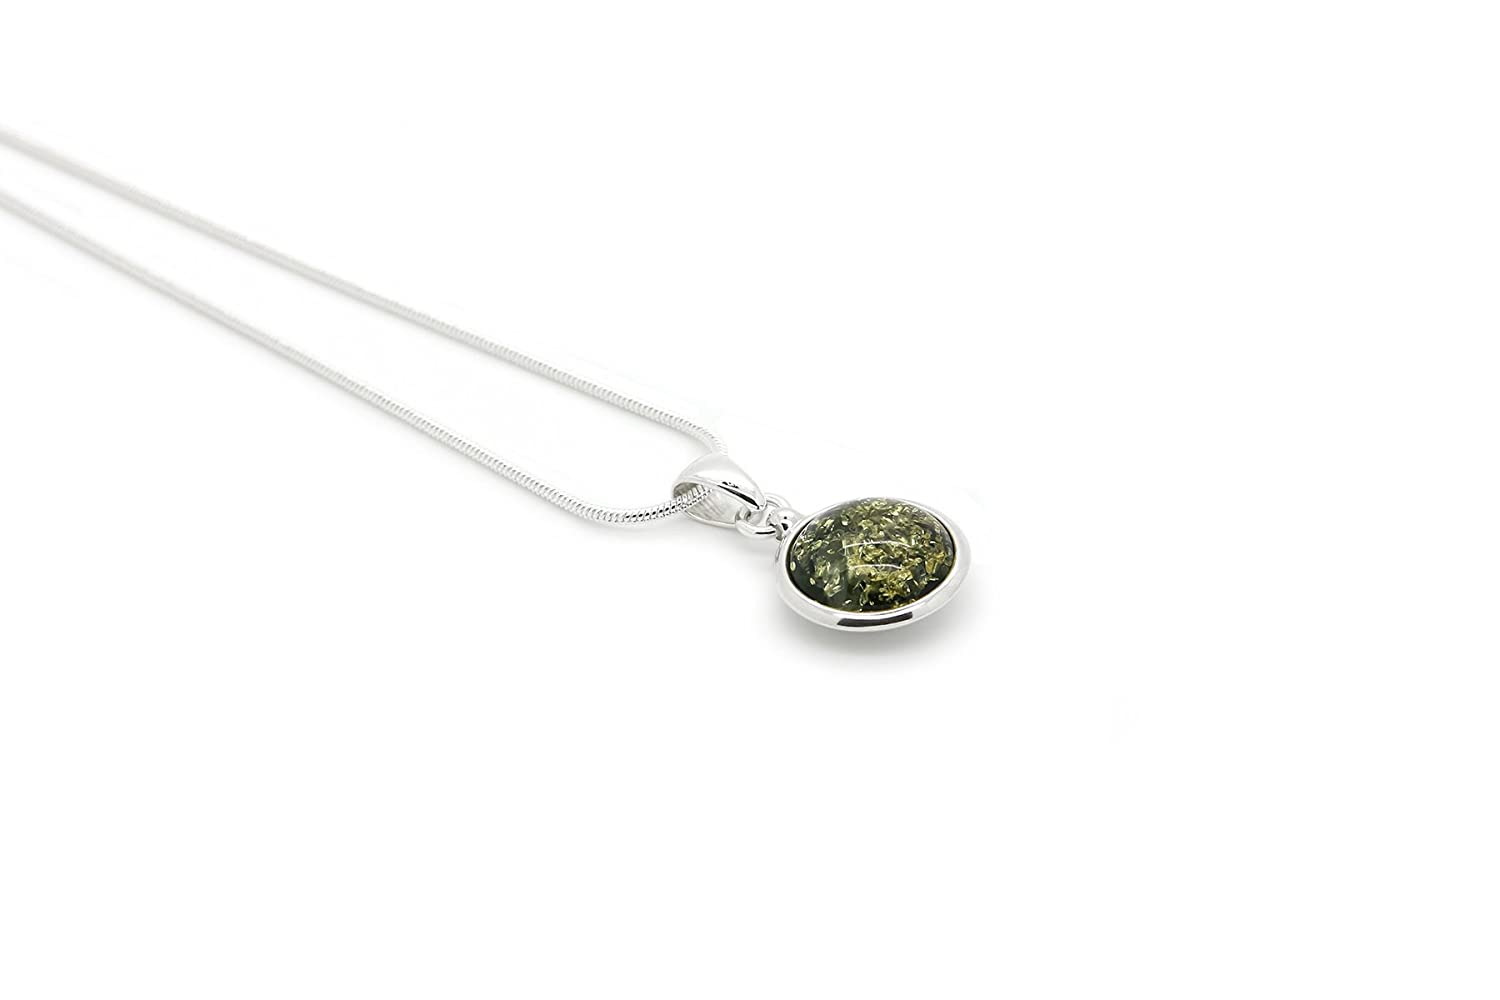 925 Sterling Silver Round Pendant Necklace with Genuine Natural Baltic Green Amber. Chain included